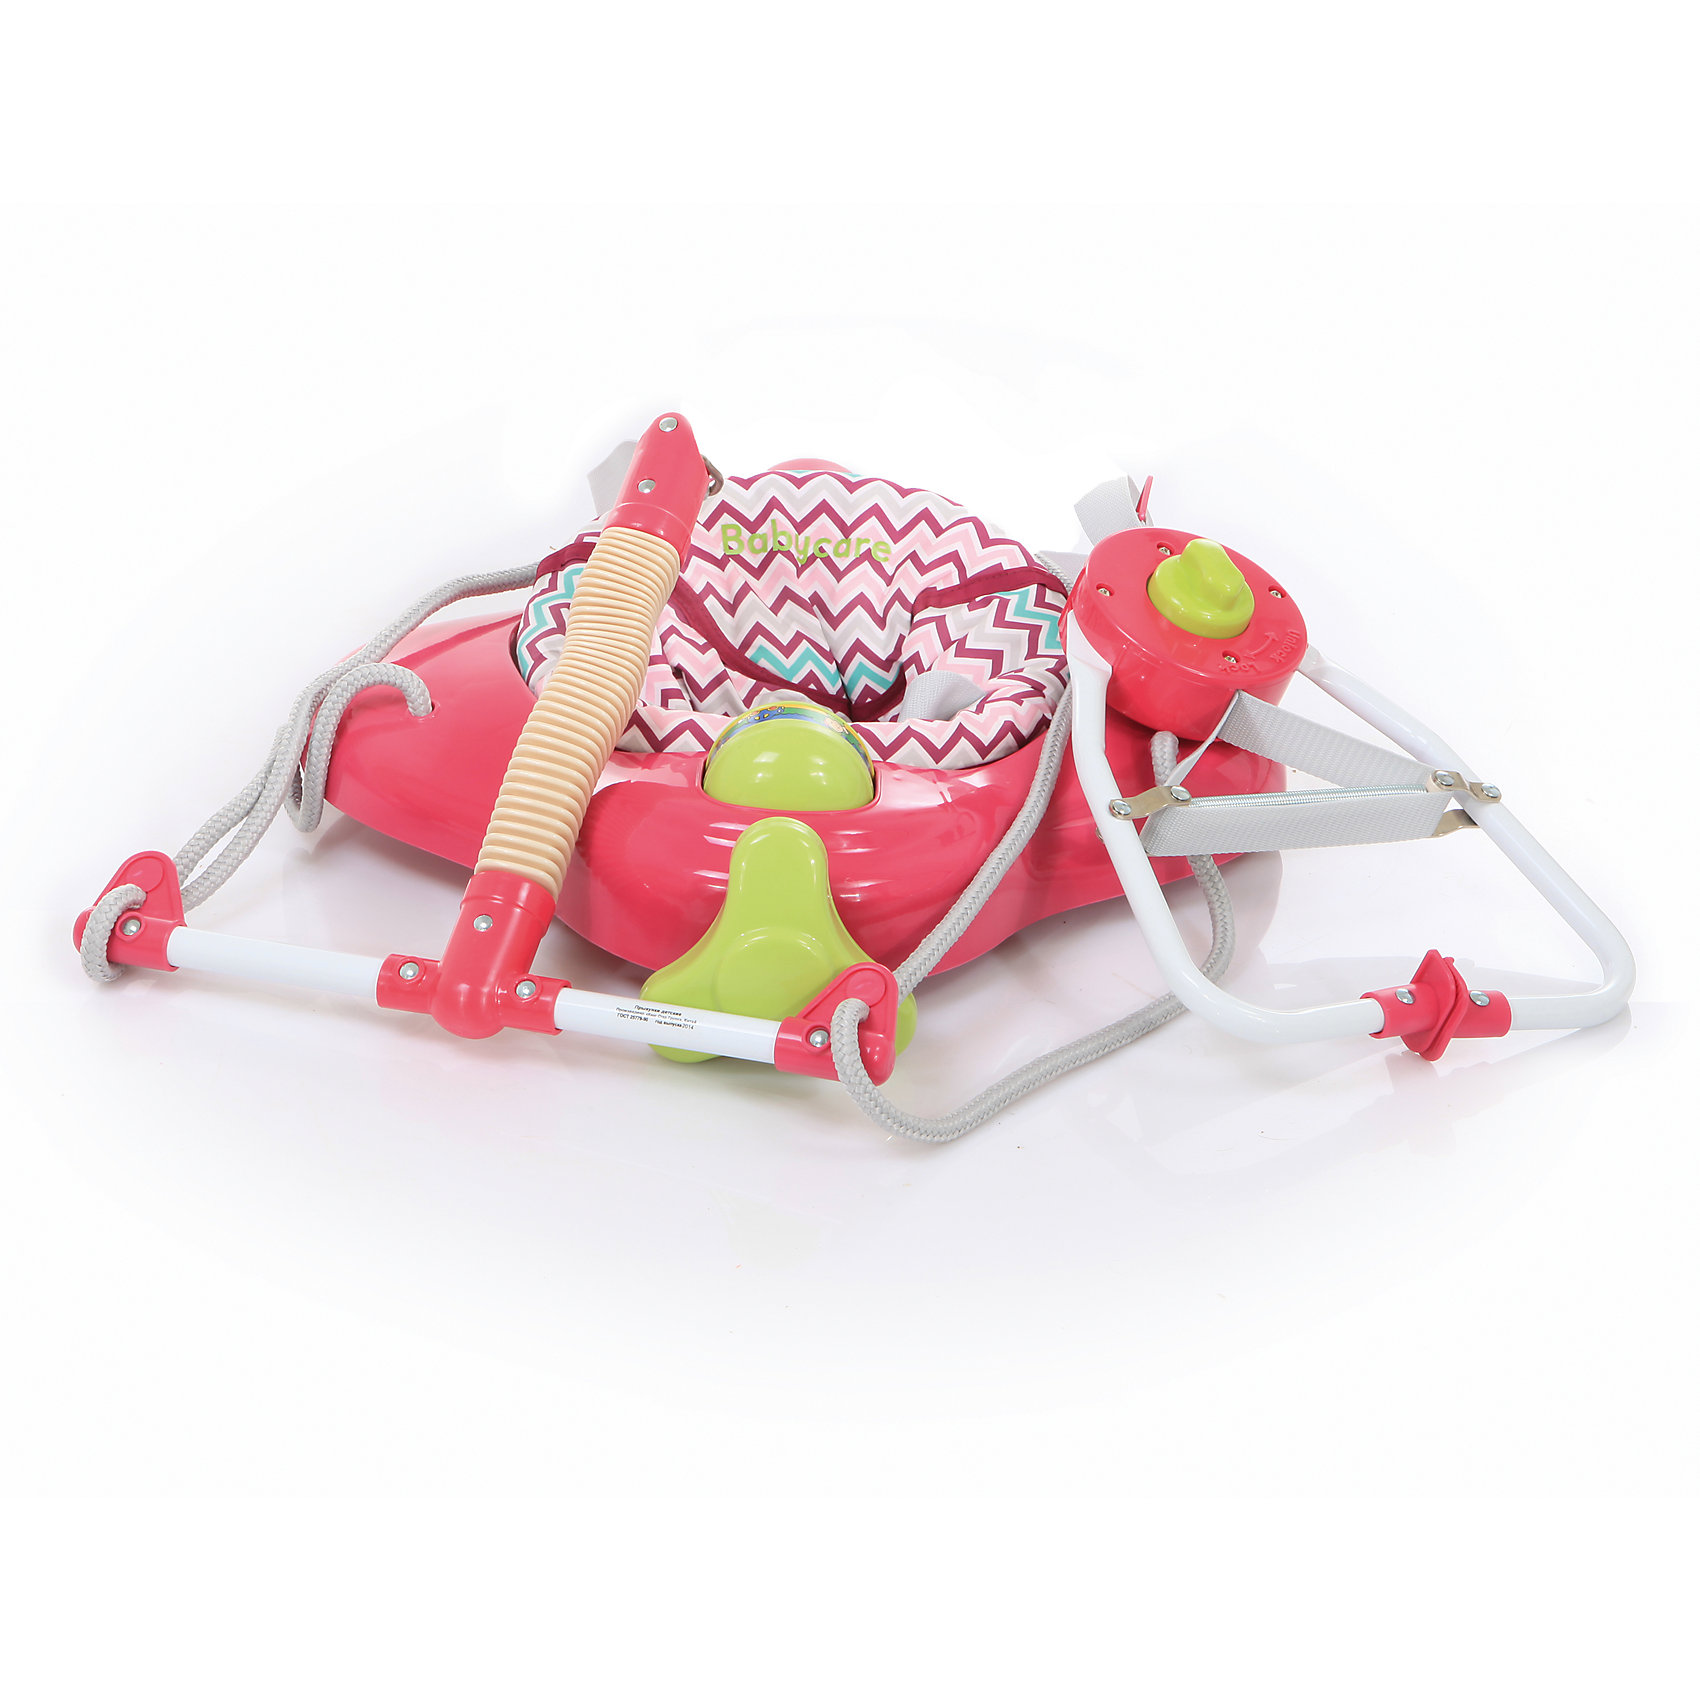 Прыгунки Aero, Baby Care, Raspberry Stripe от myToys